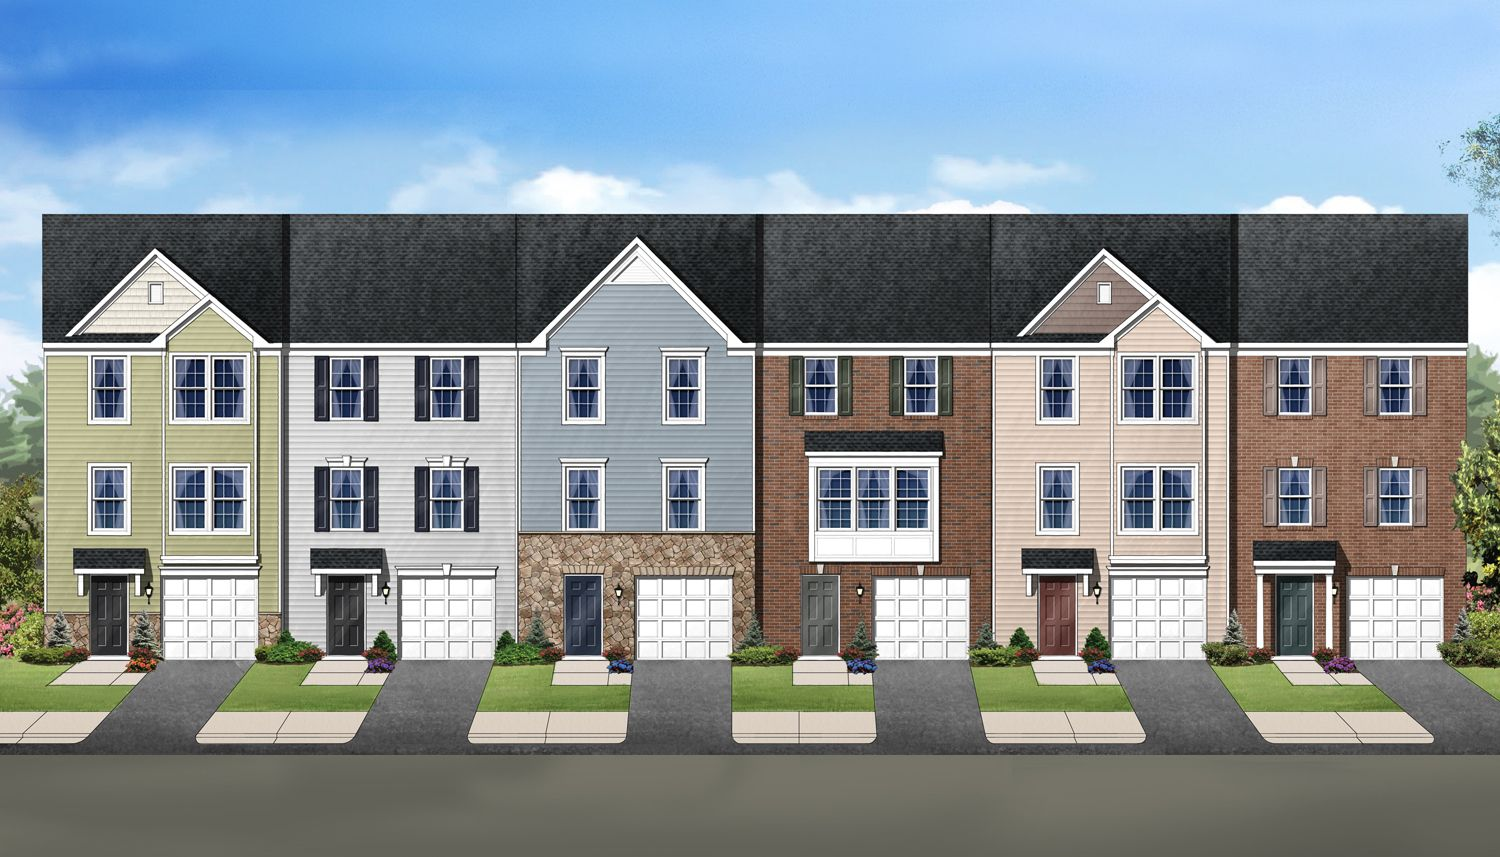 Single Family for Sale at Canterbury Woods - Townhomes - York Ii Garage 302 Kingsbury Court Fairmont, West Virginia 26554 United States